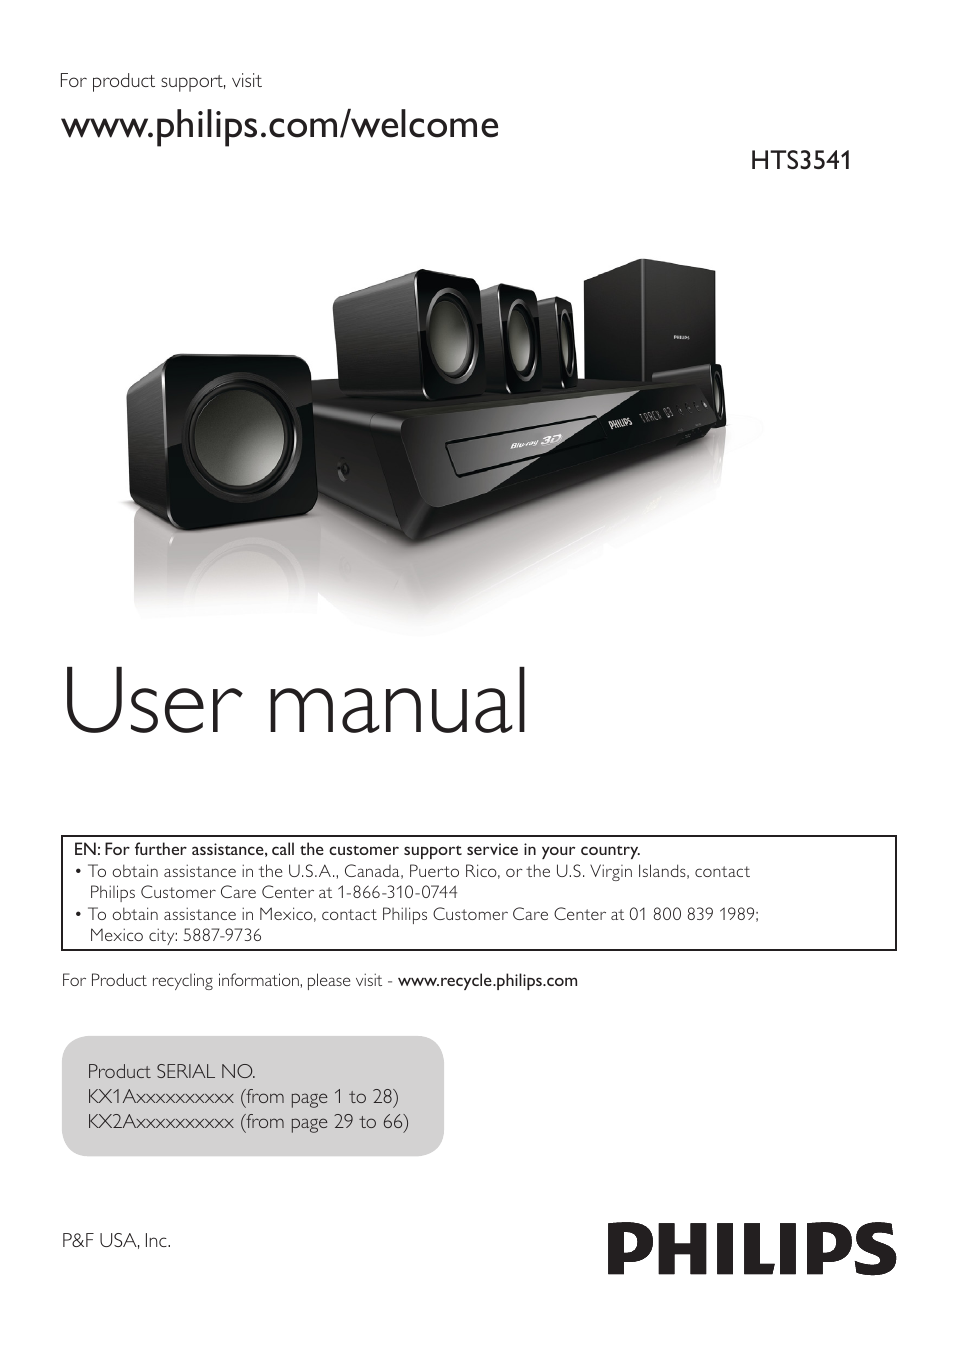 philips hts3541 f7 user manual 70 pages rh manualsdir com Philips Blu-ray DVD Player Surround Sound Philips Blu-ray Home Theater